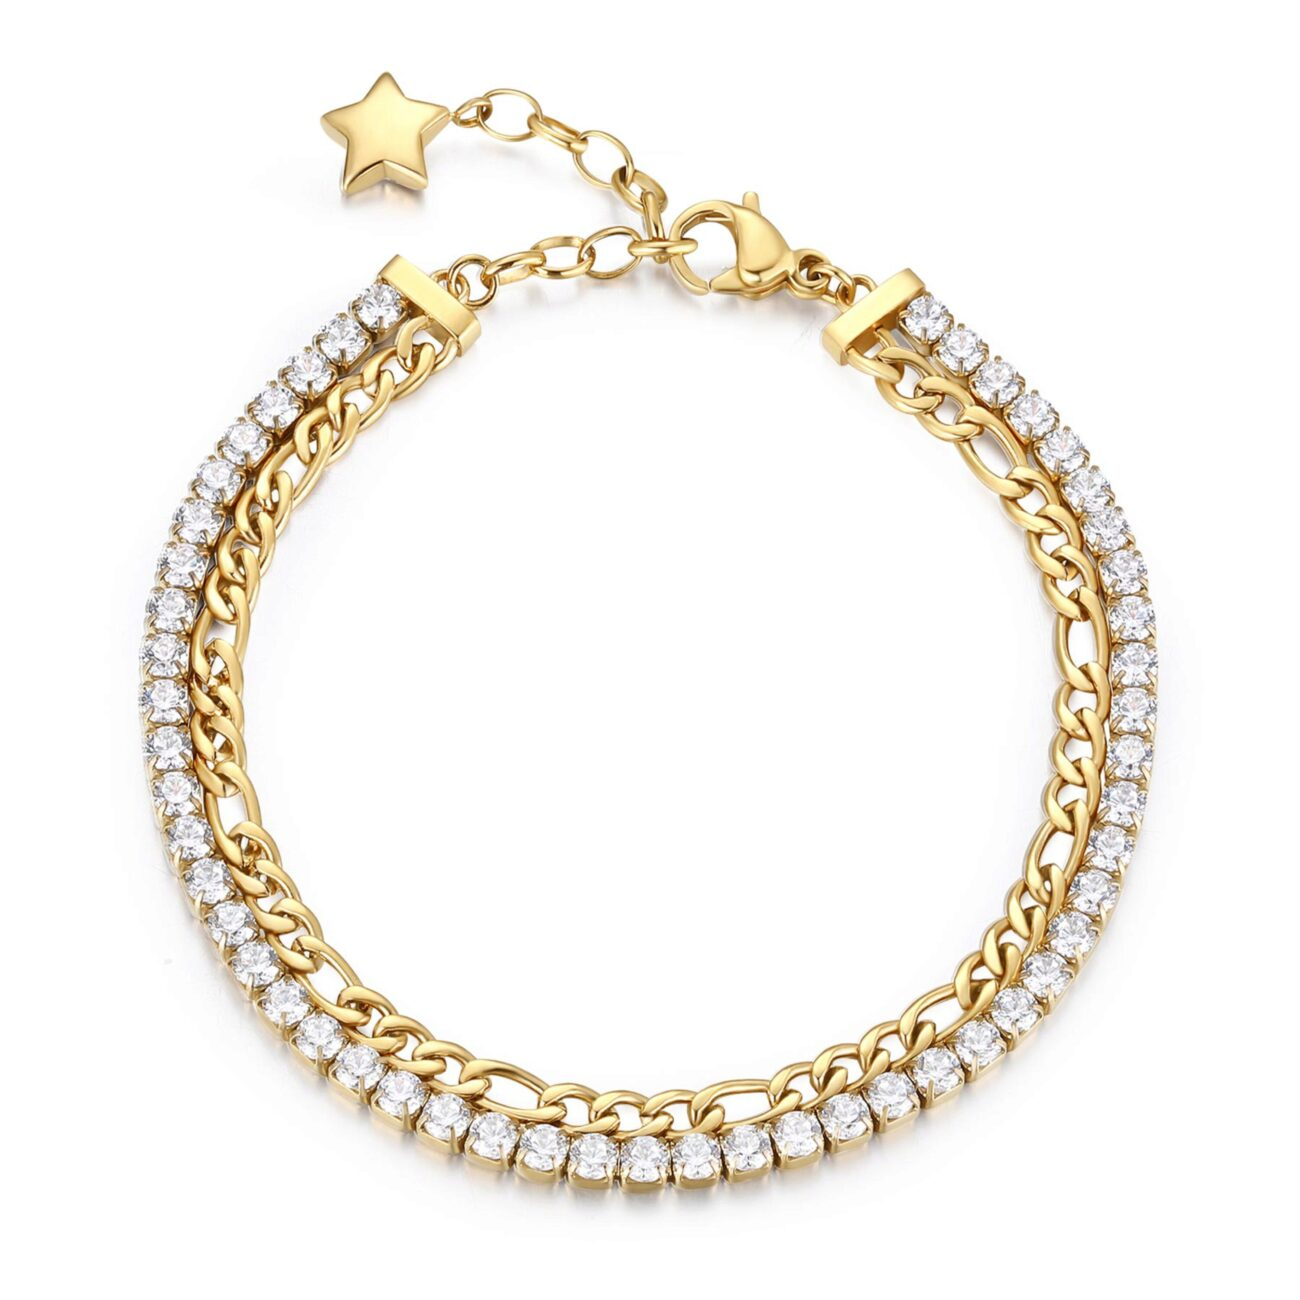 304 stainless steel double tennis bracelet and gold finishes with white cubic zirconia.